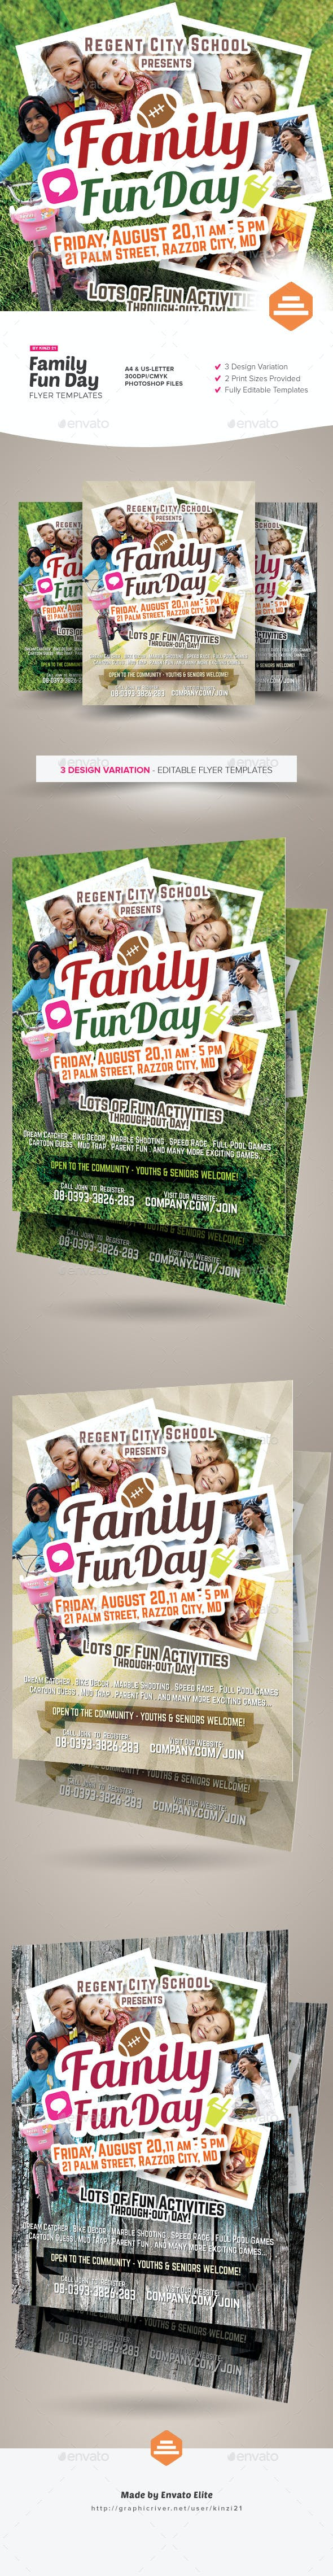 family fun day flyers by kinzi21 graphicriver